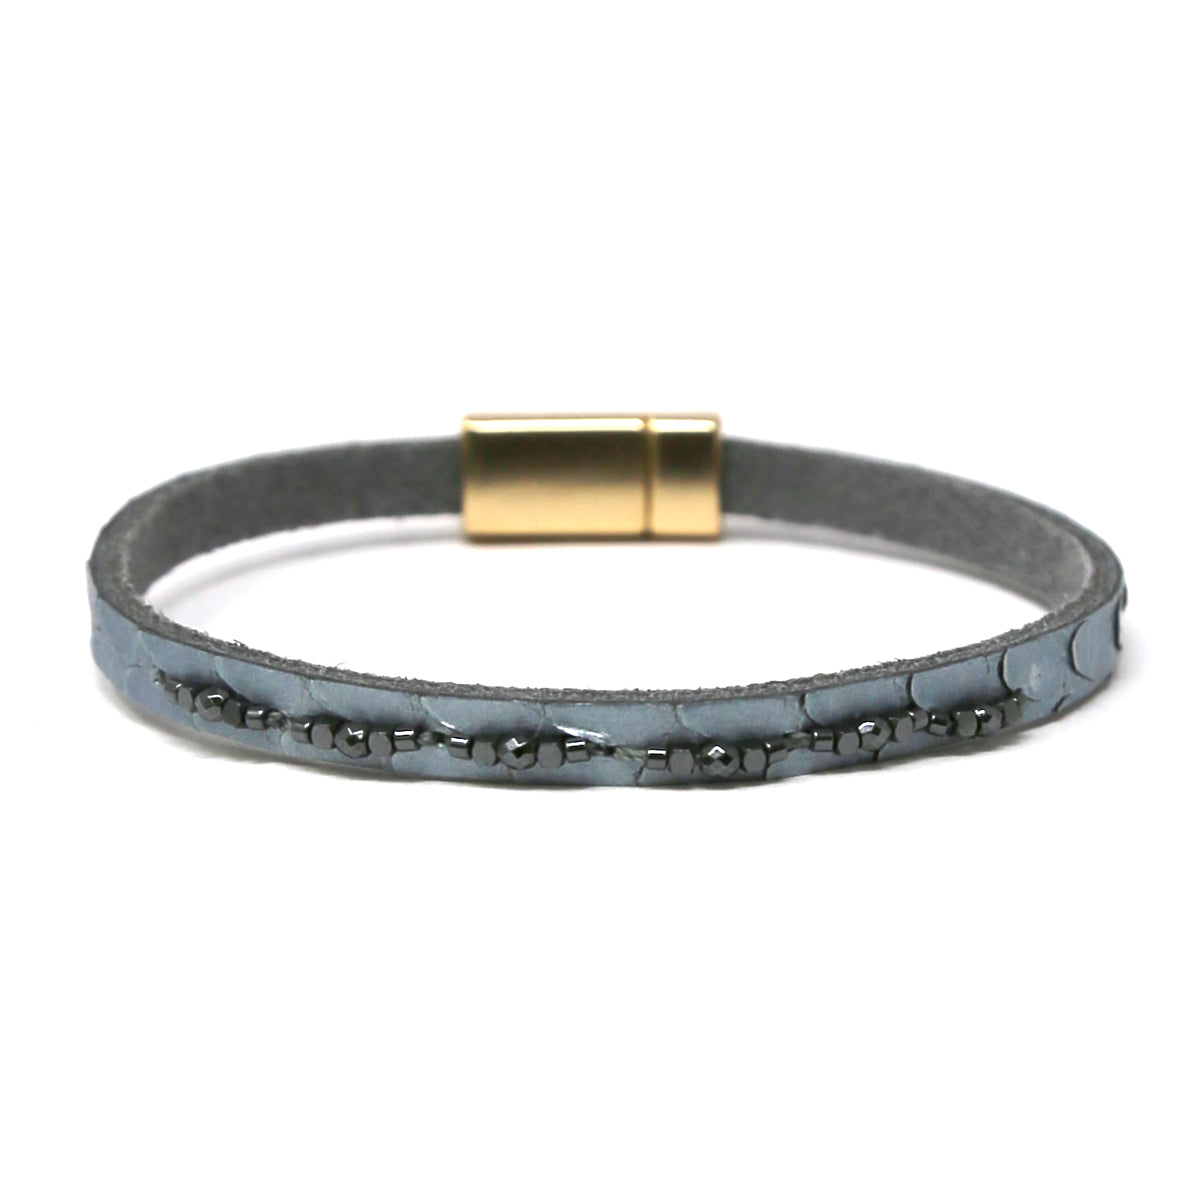 Stone Embellished Snake Skin Print Genuine Leather Bracelet